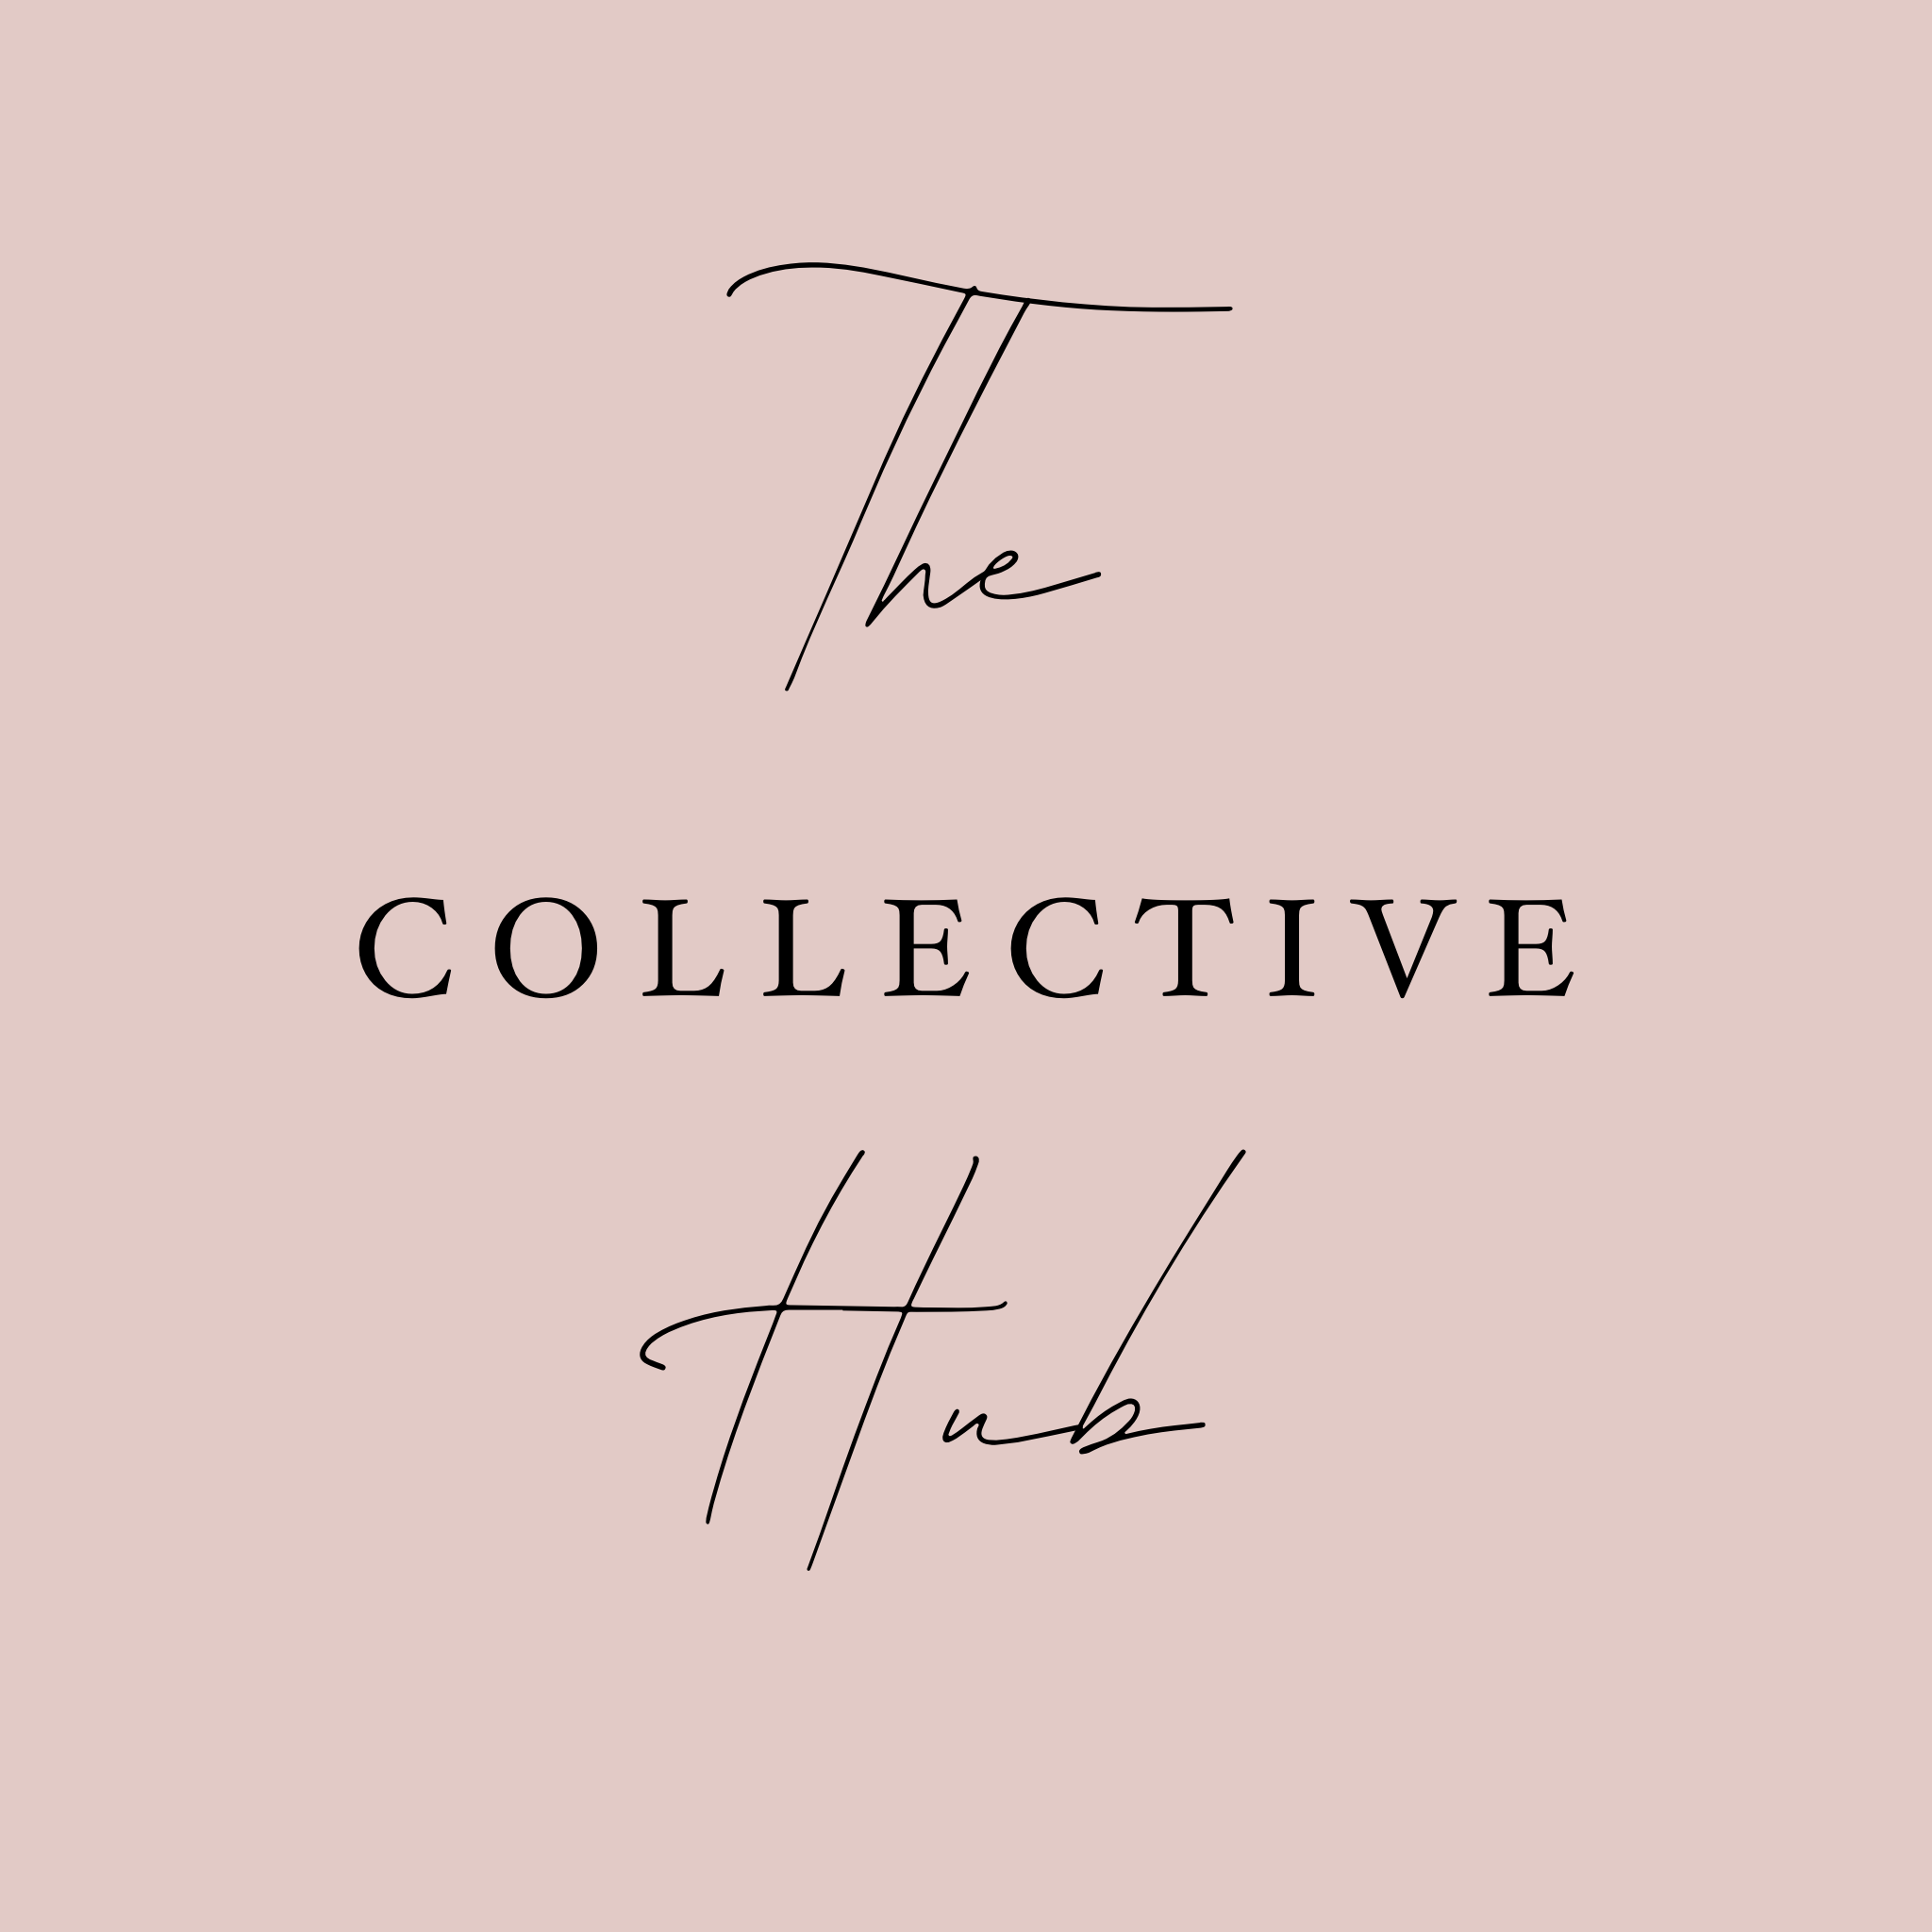 The Collective Hub - Intimo Lingerie